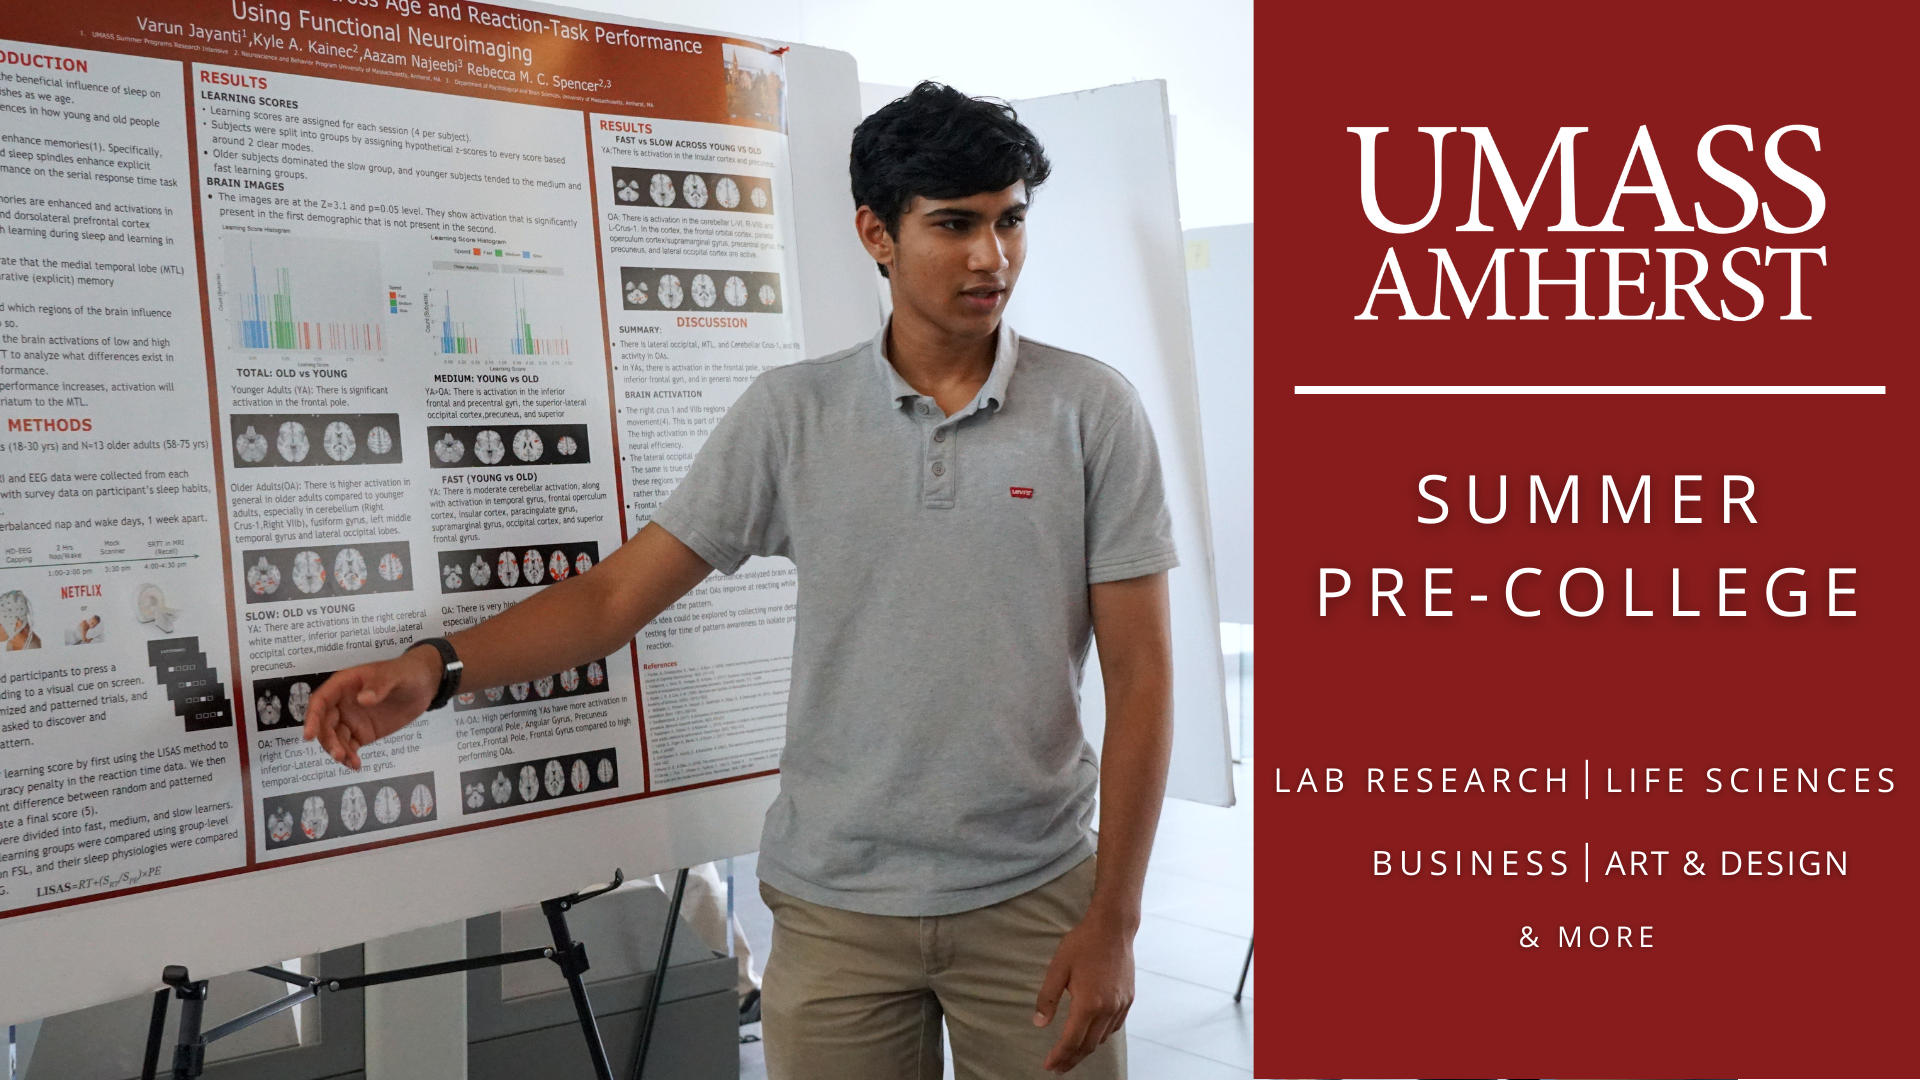 UMass Amherst Summer Pre-College: How Business Works